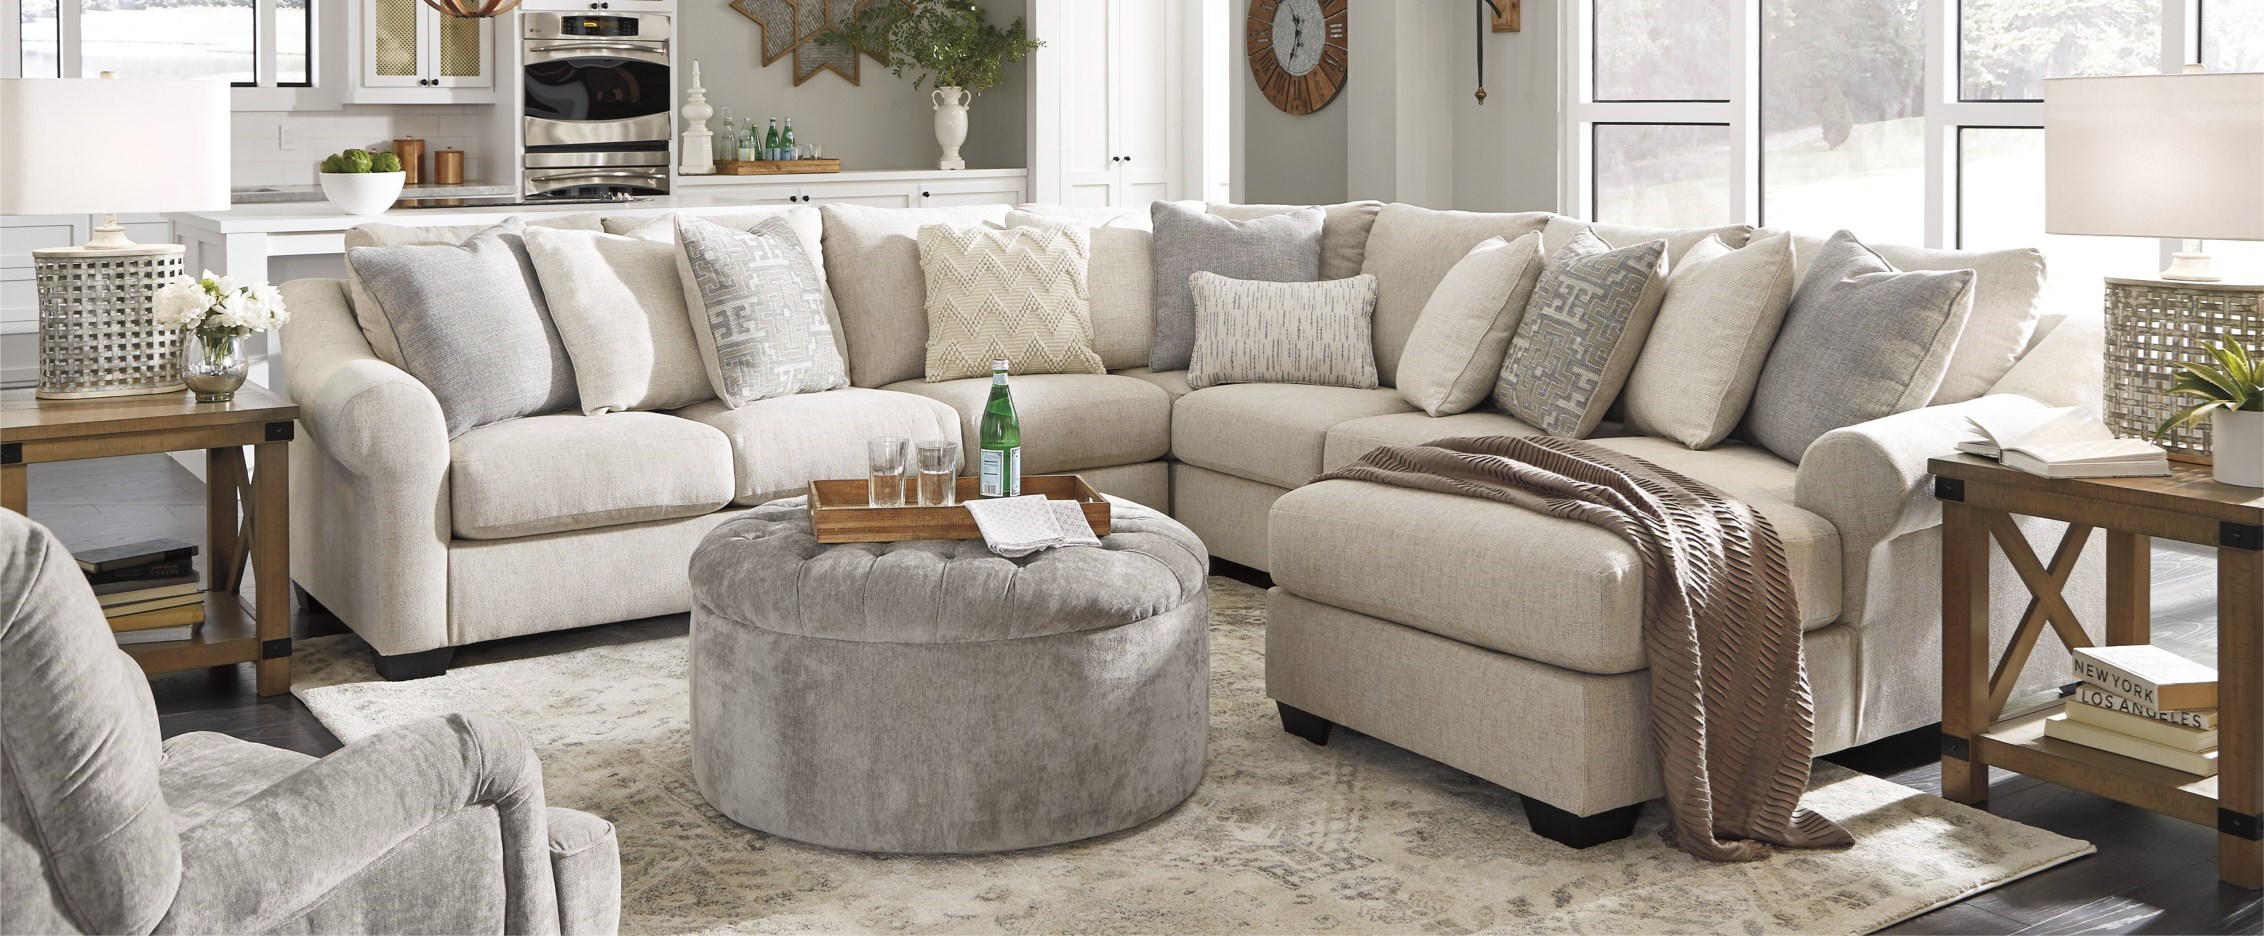 sofa sectional beige upholstery